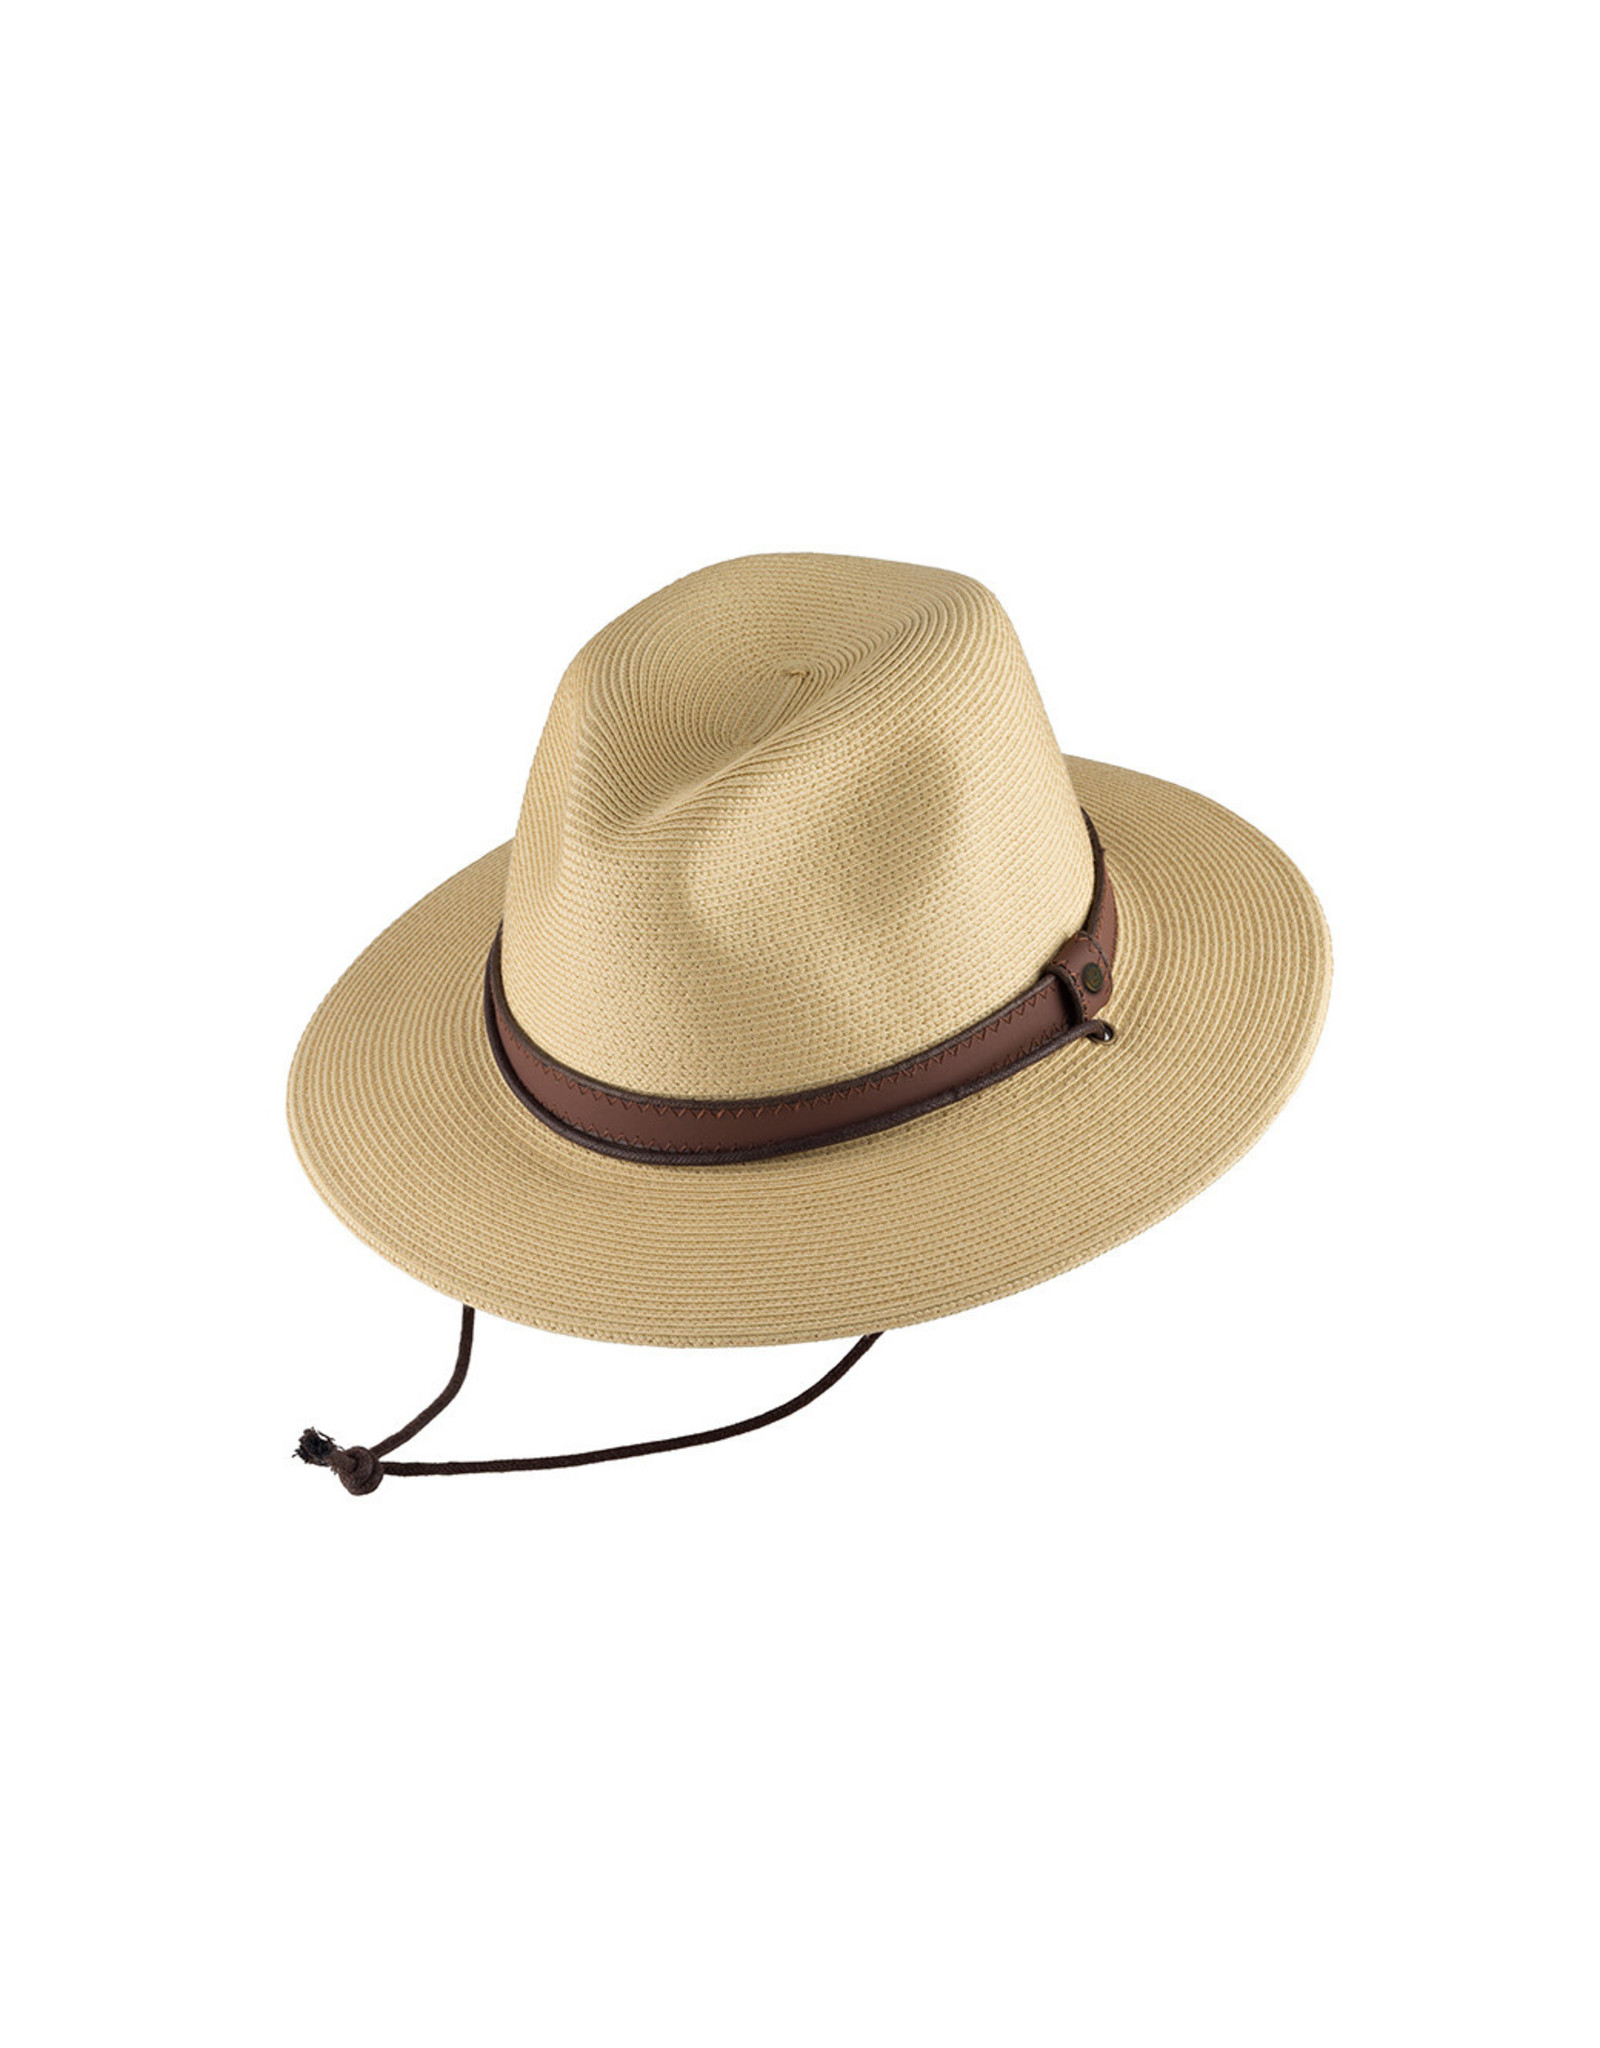 KOORINGAL HSM-0262 MEN'S HAMILTON SAFARI HAT